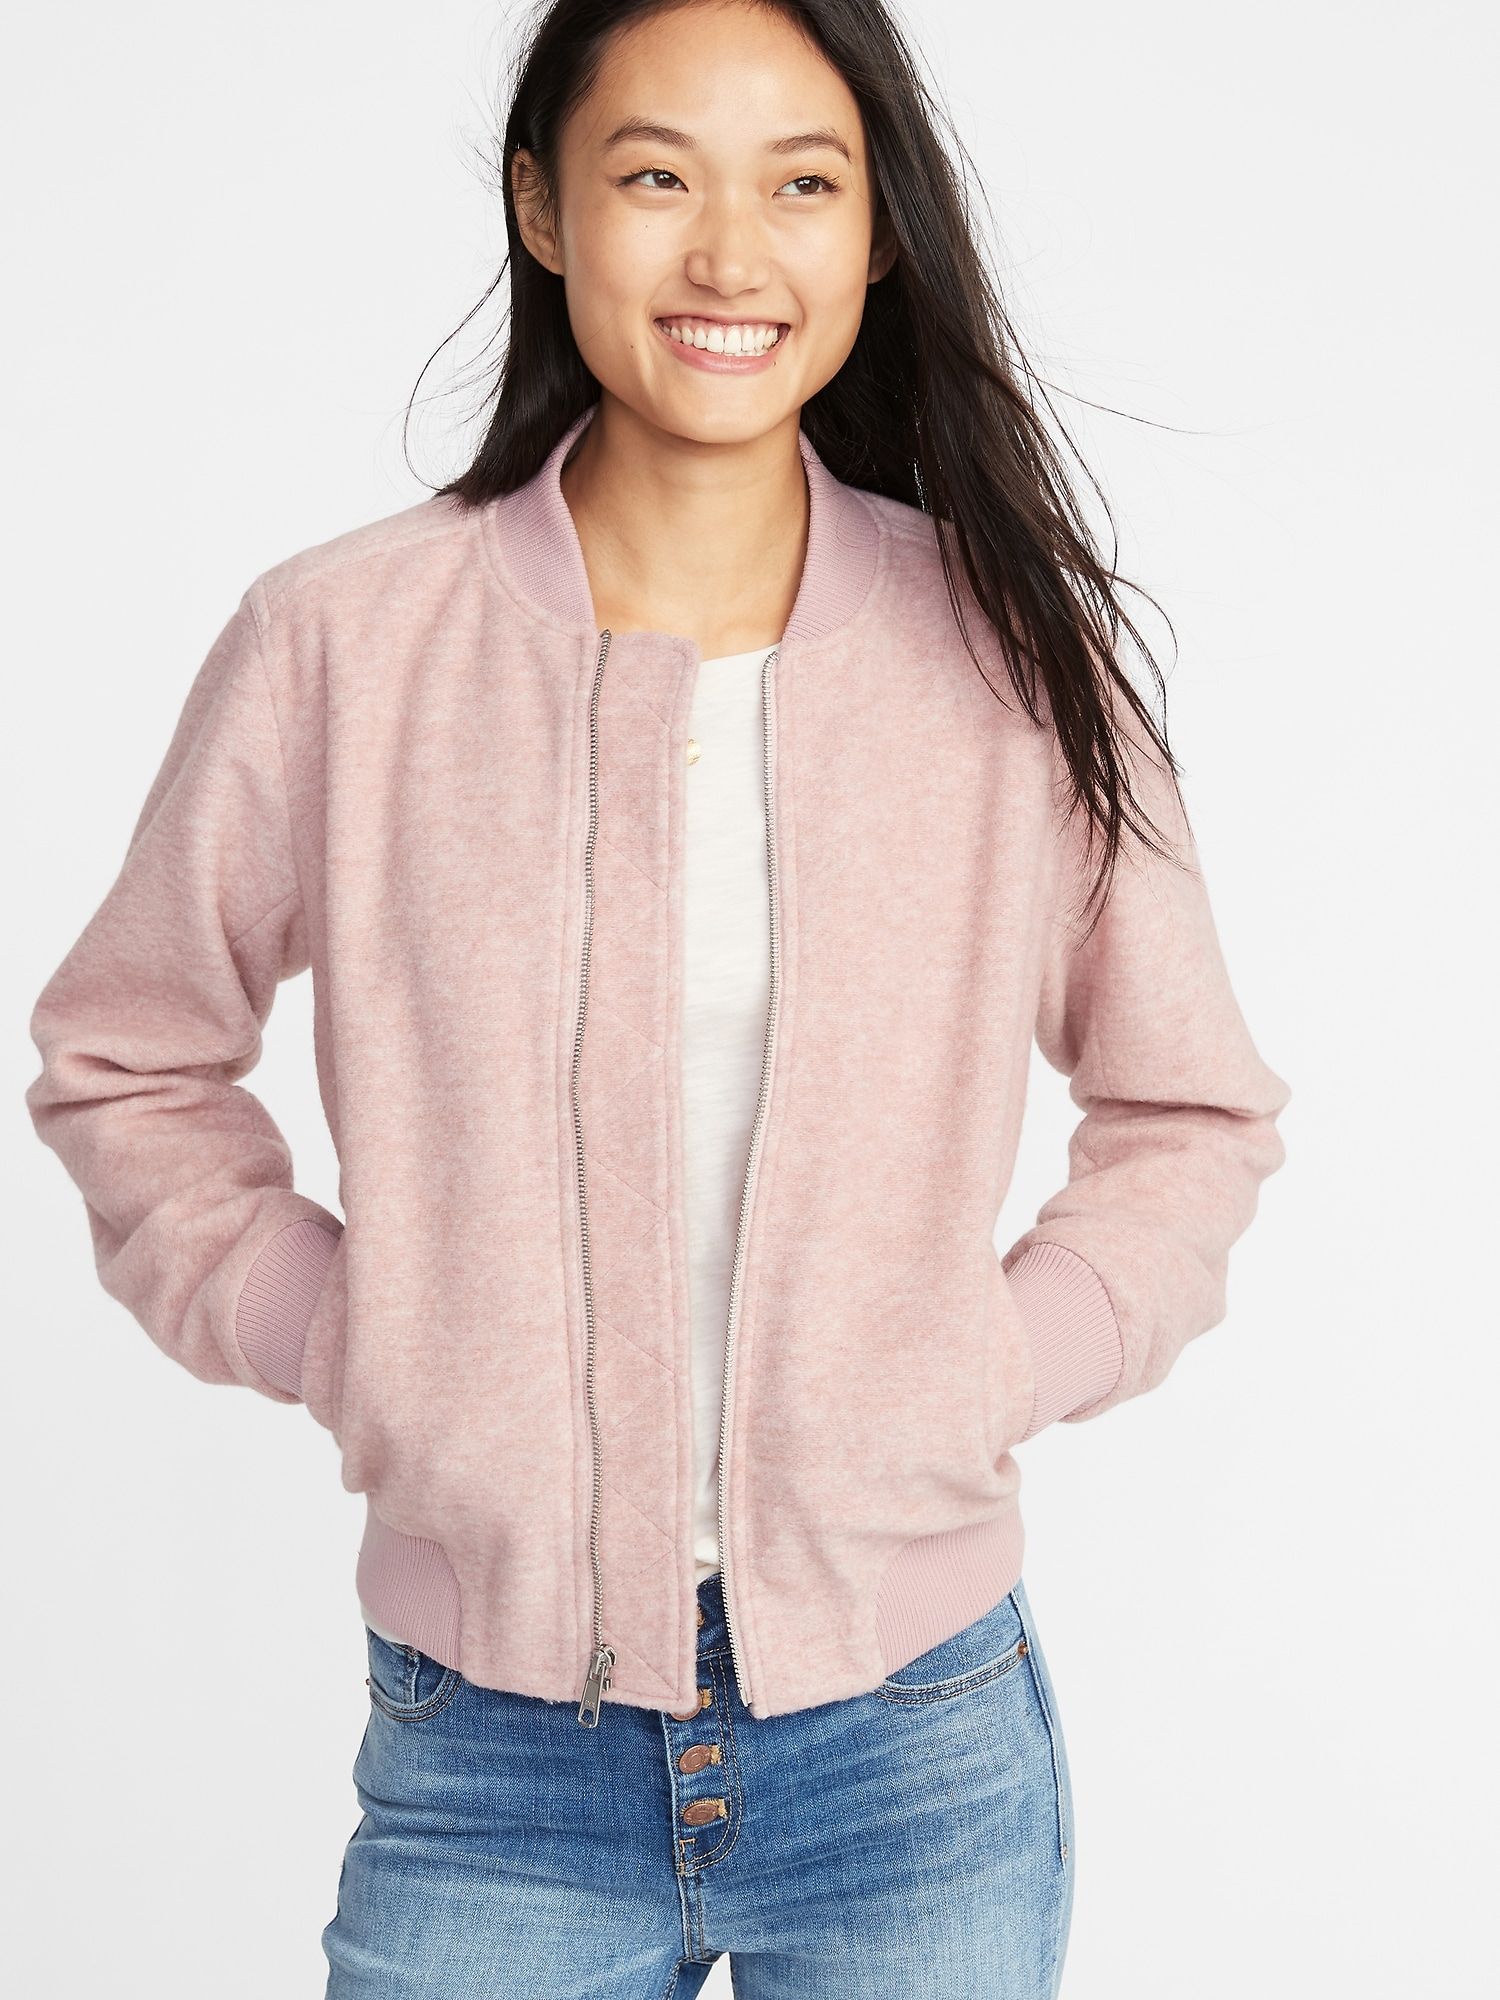 36f7390dd2 Textured Jacquard Zip Bomber Jacket for Women | Old Navy